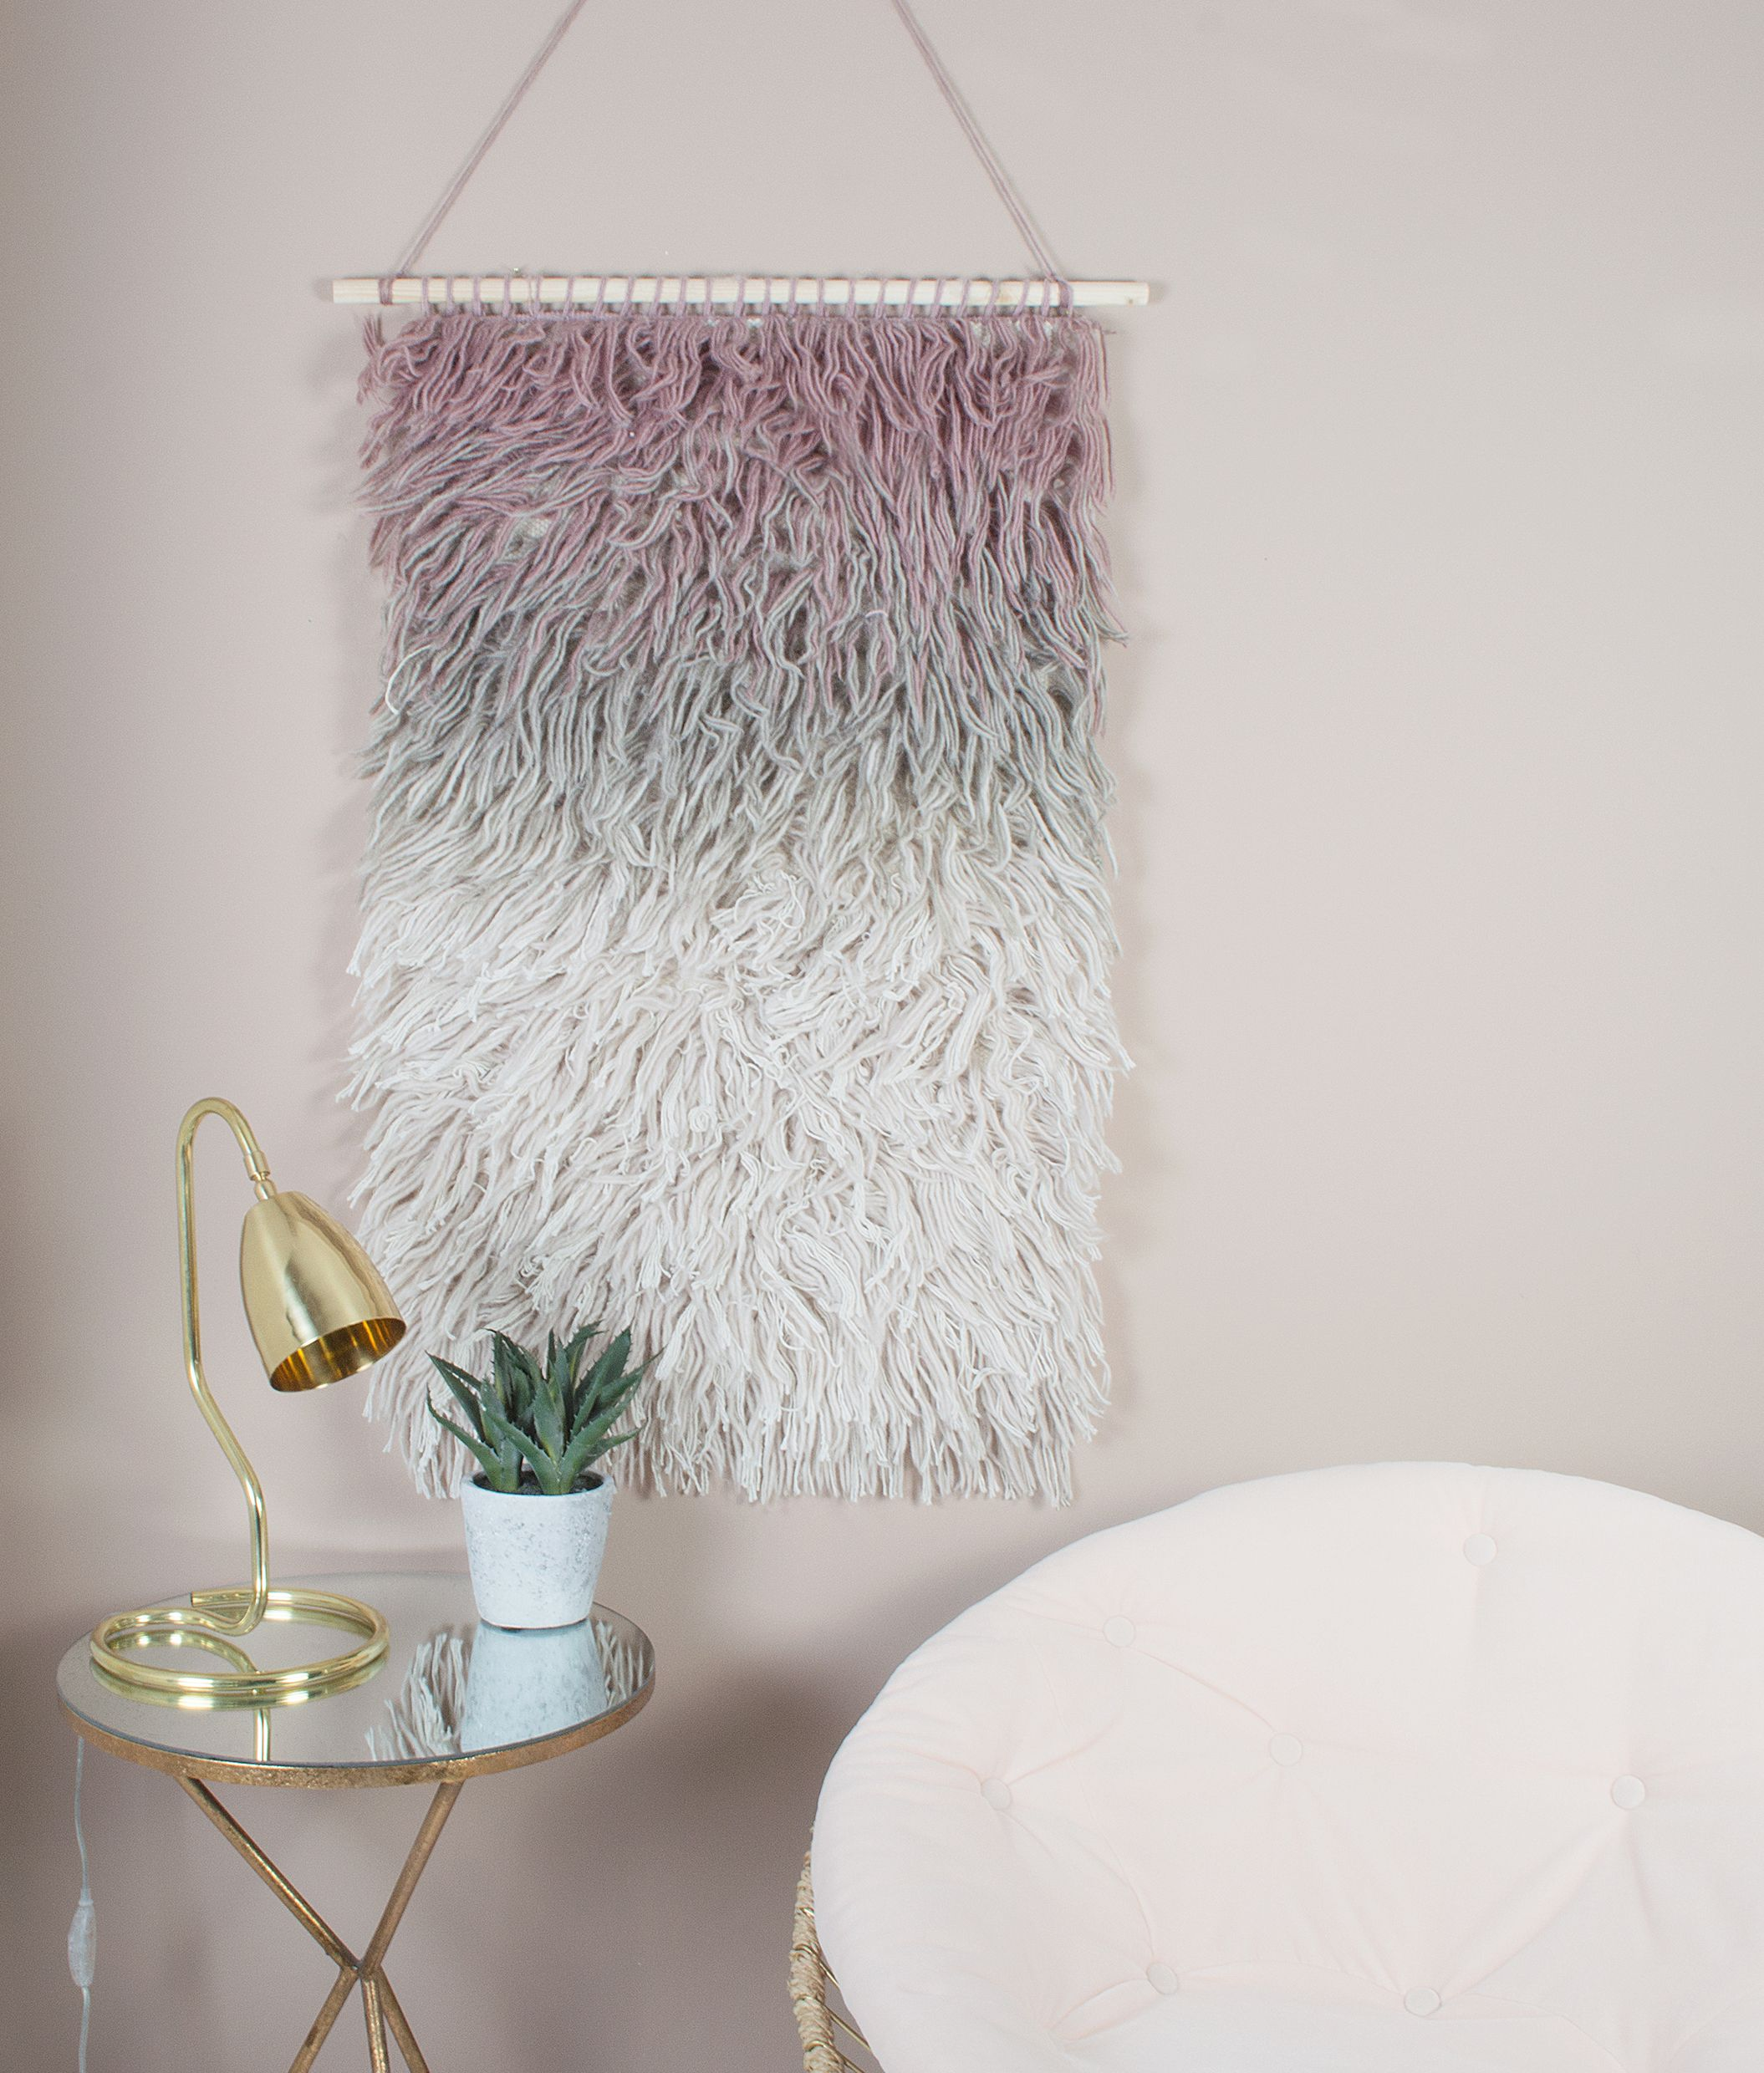 27 hygge inspired items for your home modern wall decor on hygge wall decor id=48553